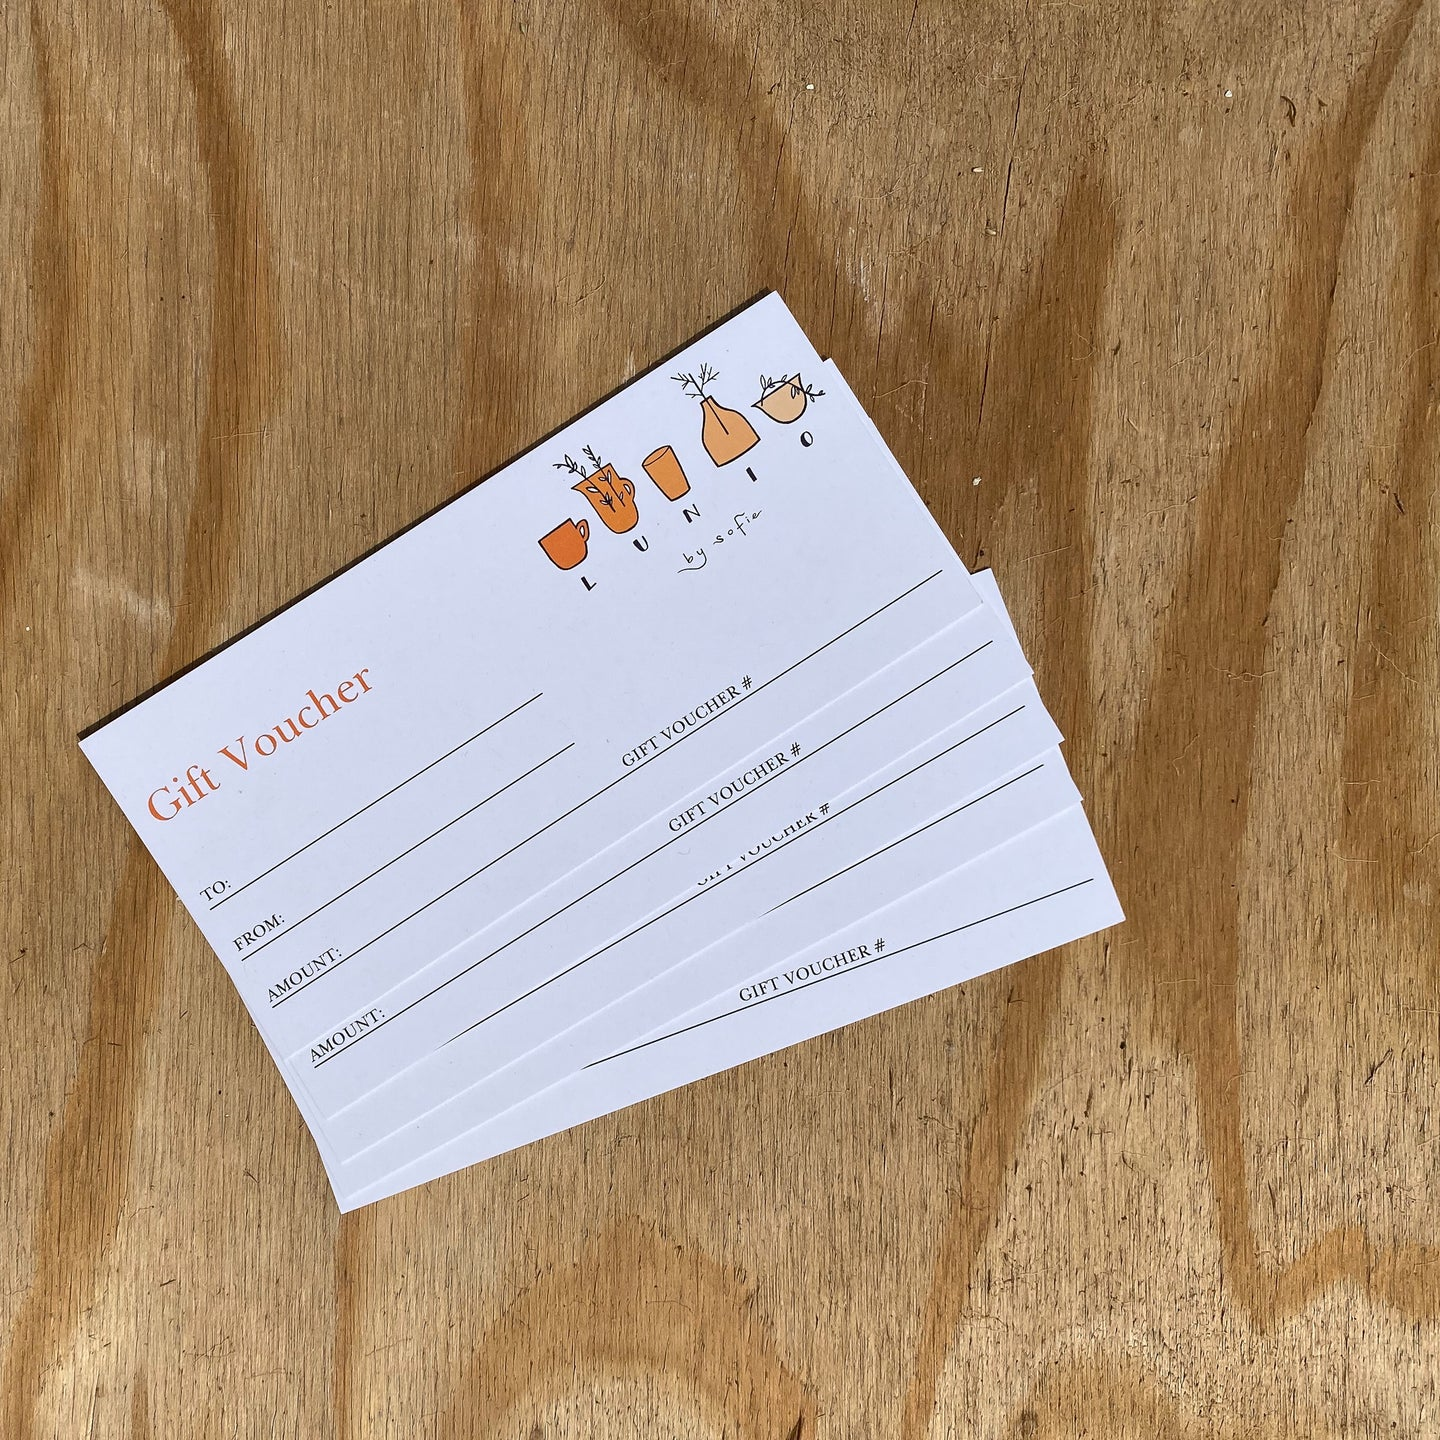 A blank paper gift voucher with the Lunio by Sofie logo, resting on a piece of pale wood.